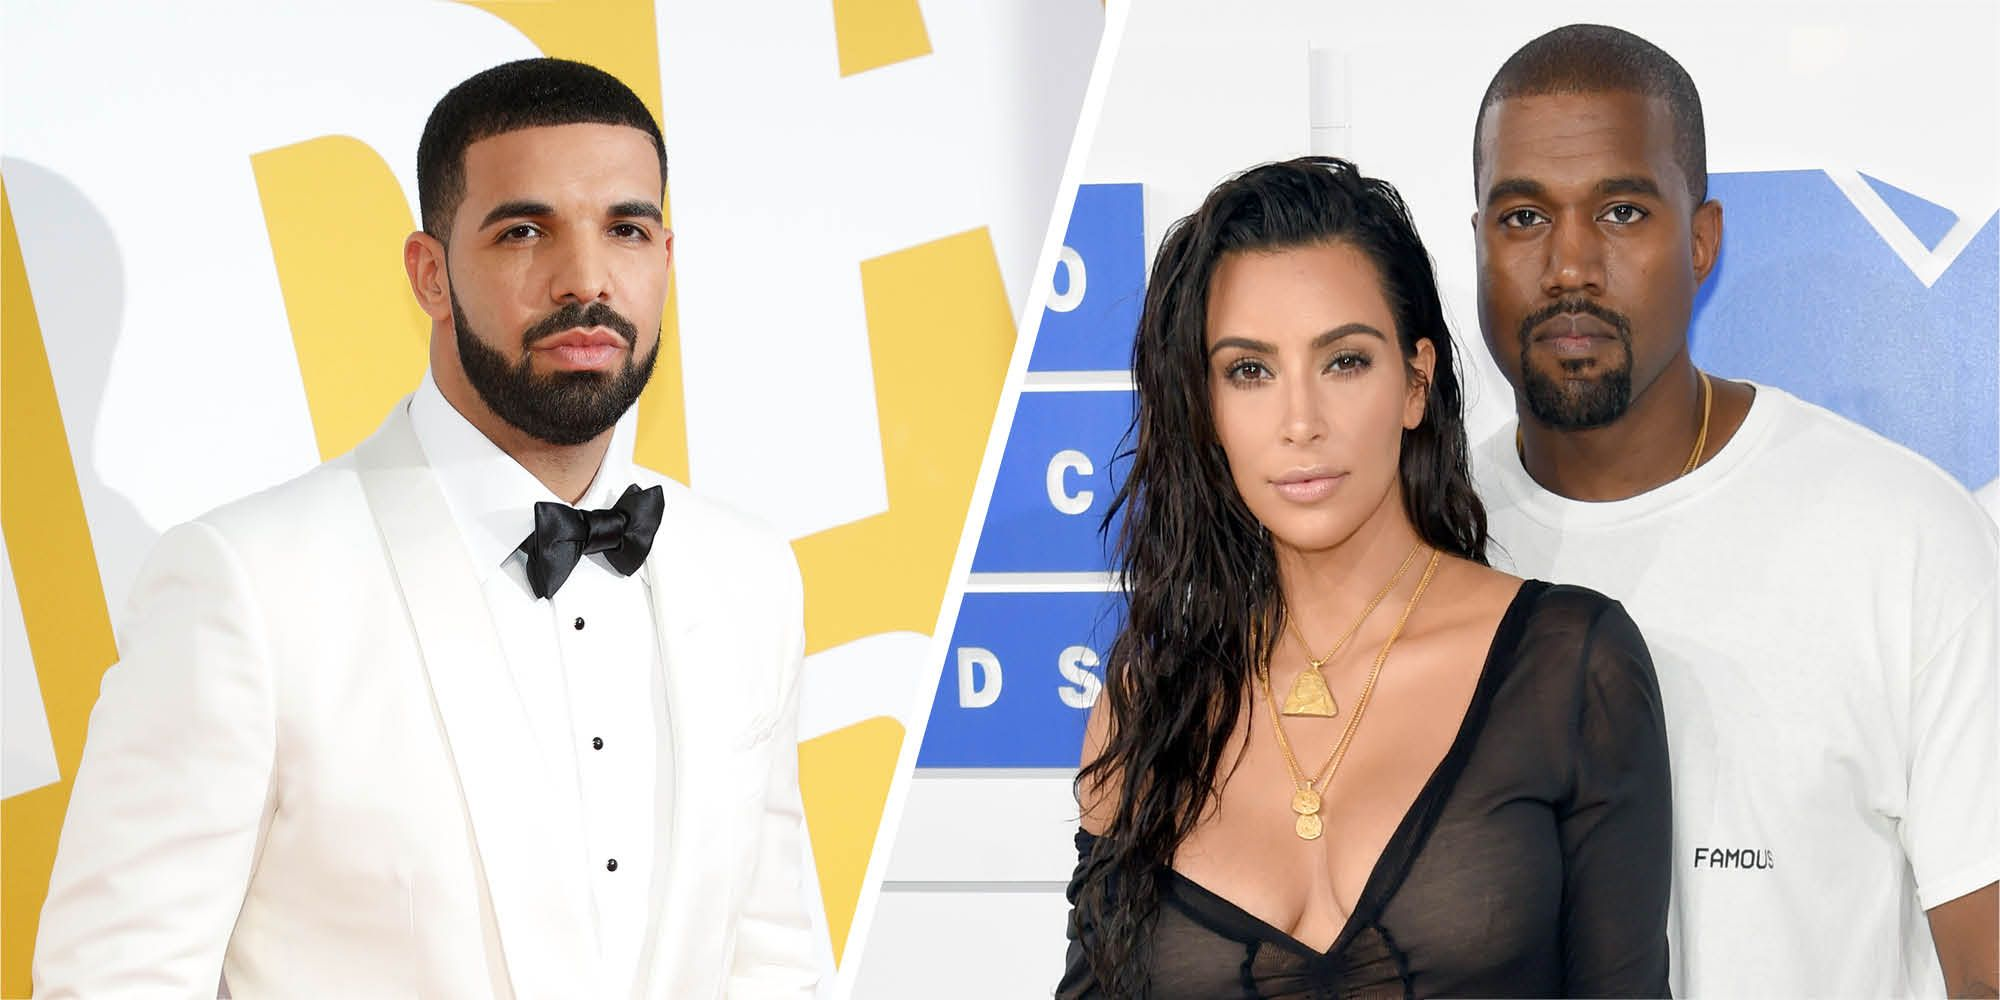 Viral fan theory says Drake is singing about Kim Kardashian in 'In My Feelings'